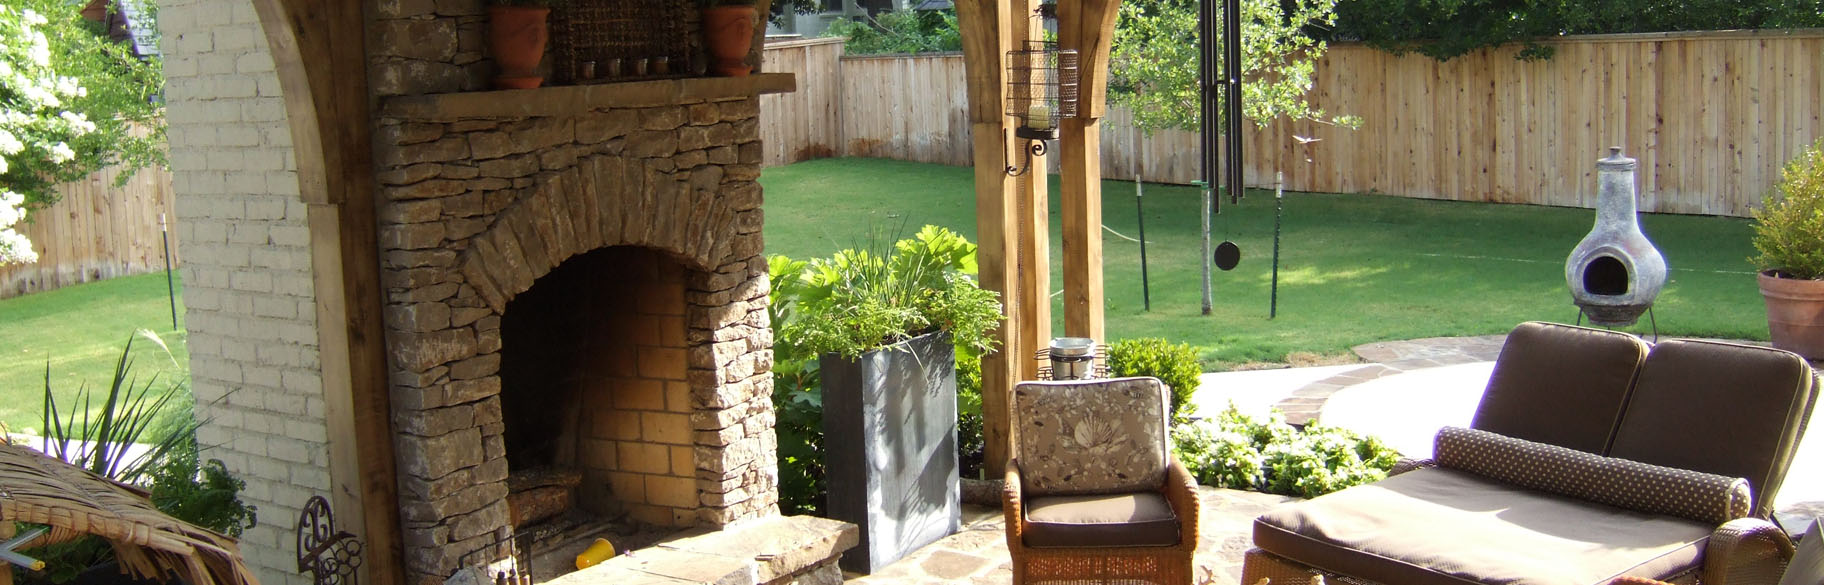 Outdoorfireplace_oklahomalanscape_tulsa-04